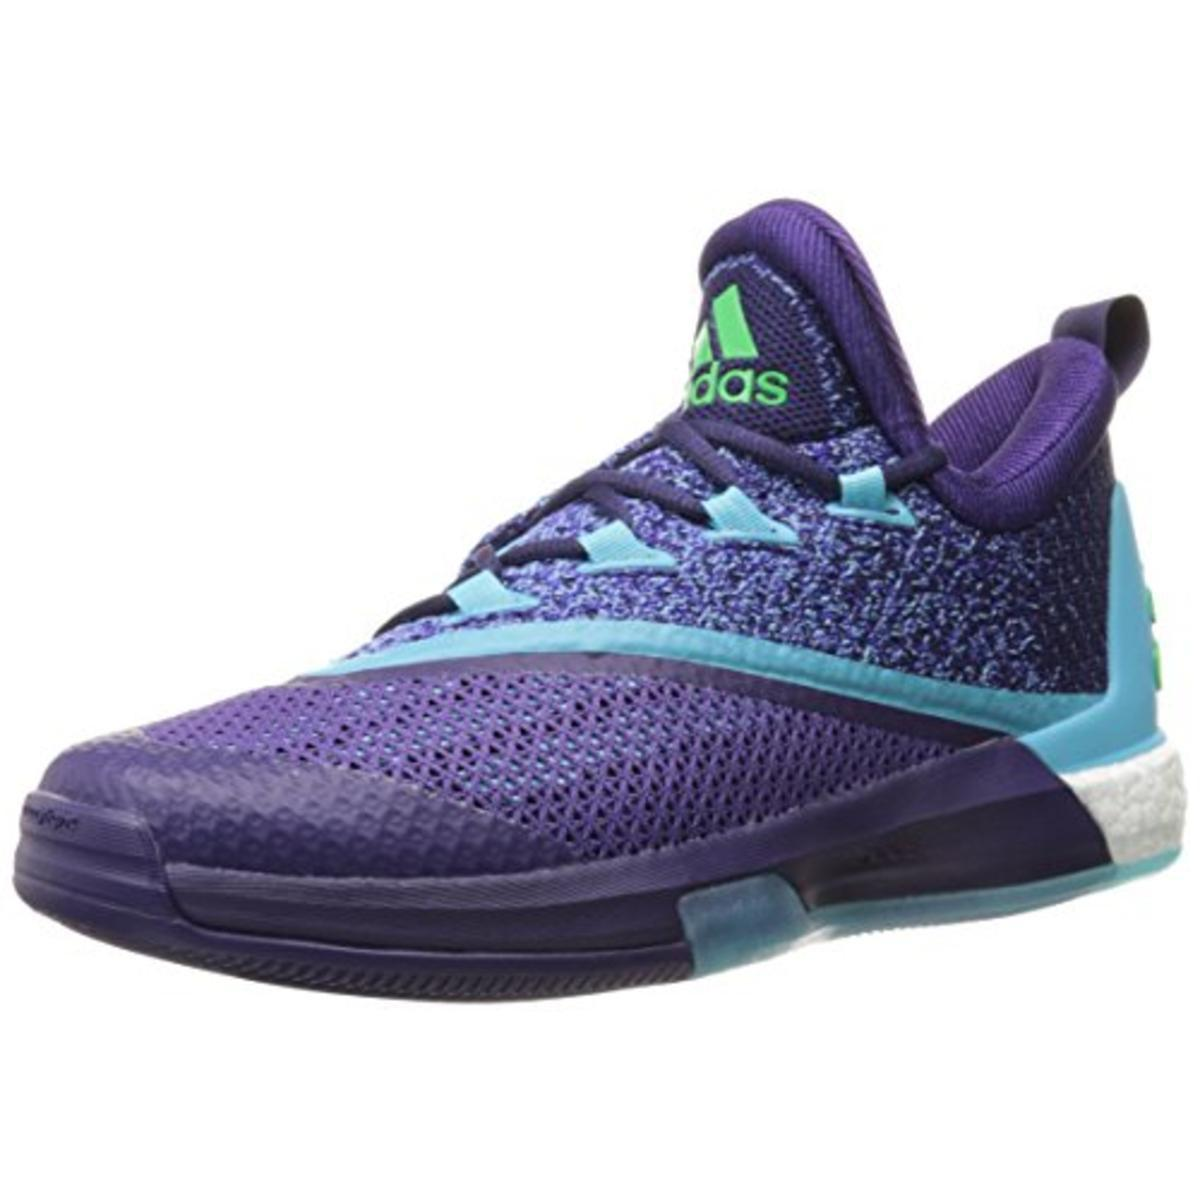 0b6df1f71273 ... promo code for lyst adidas crazylight boost 2.5 mesh glow in dark  basketball 42514 1d855